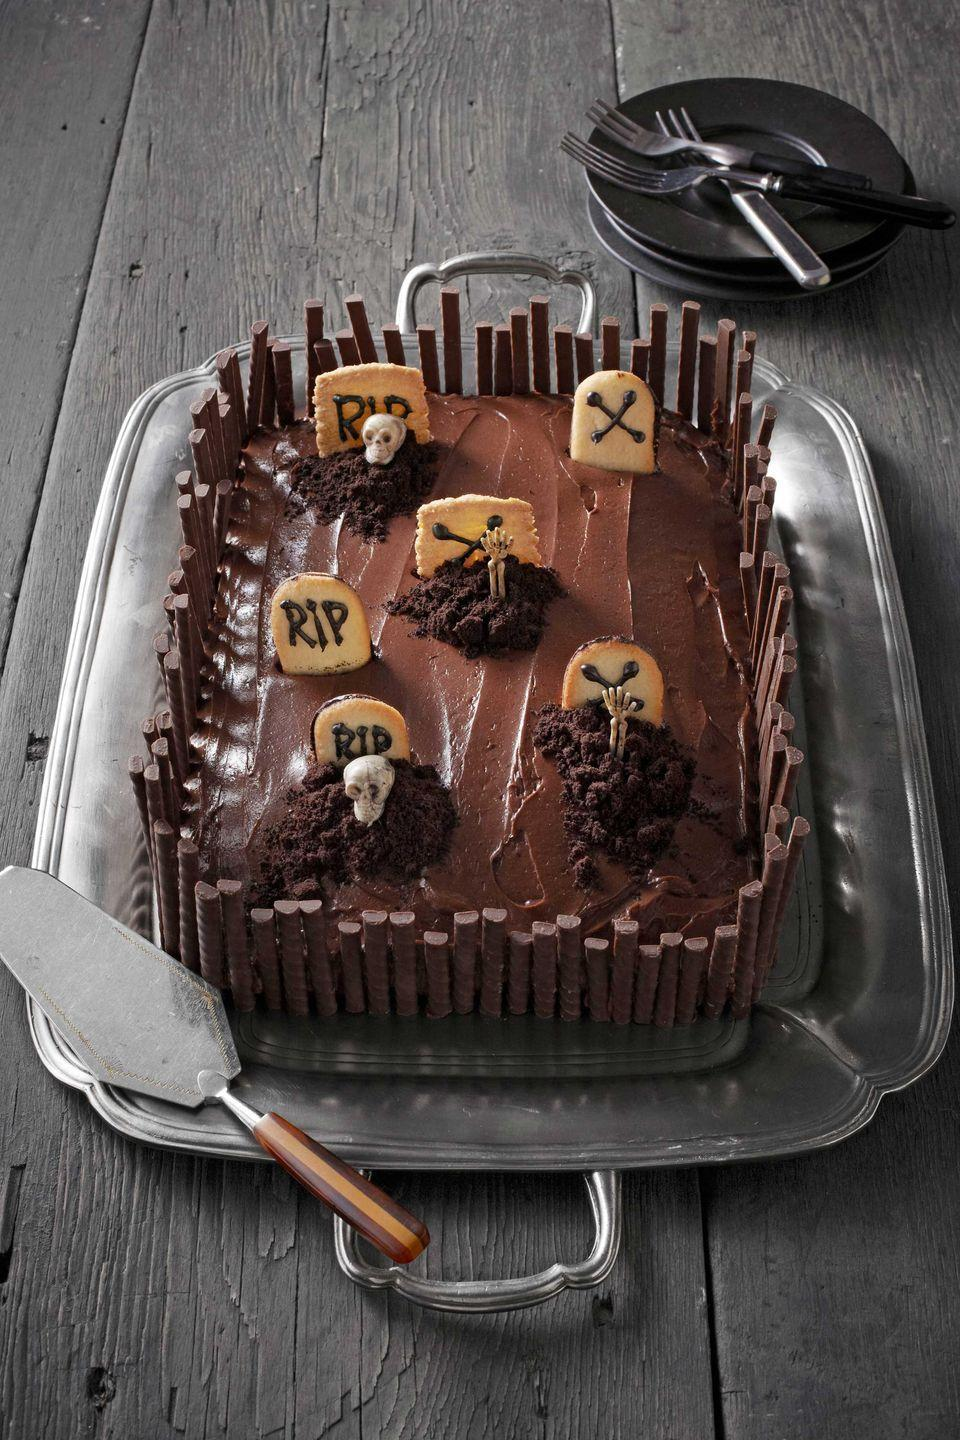 """<p>The key to this mini-cemetery is the array of tombstones fashioned from Pepperidge Farm's Milano and Bordeaux cookies.</p><p><strong>Step 1:</strong> Bake chocolate cake of your choosing and frost with your favorite chocolate frosting.</p><p><strong>Step 2:</strong> Pipe """"X"""" and """"RIP"""" in chocolate icing on cookies. Push into cake and crumble chocolate wafers to make """"dirt.""""</p><p><strong>Step 3:</strong> Surround edges of the cake with chocolate wafers.</p><p><strong>Step 4:</strong> Insert plastic skeletons into the """"dirt.""""</p><p><strong><a href=""""https://www.countryliving.com/food-drinks/g217/basic-vanilla-and-chocolate-cake-recipes/"""" rel=""""nofollow noopener"""" target=""""_blank"""" data-ylk=""""slk:Get a basic cake recipe"""" class=""""link rapid-noclick-resp"""">Get a basic cake recipe</a>.</strong></p><p><strong><a href=""""https://www.countryliving.com/food-drinks/recipes/a37728/rich-chocolate-frosting-recipe/"""" rel=""""nofollow noopener"""" target=""""_blank"""" data-ylk=""""slk:Get a recipe for chocolate frosting"""" class=""""link rapid-noclick-resp"""">Get a recipe for chocolate frosting</a>.<br></strong></p>"""